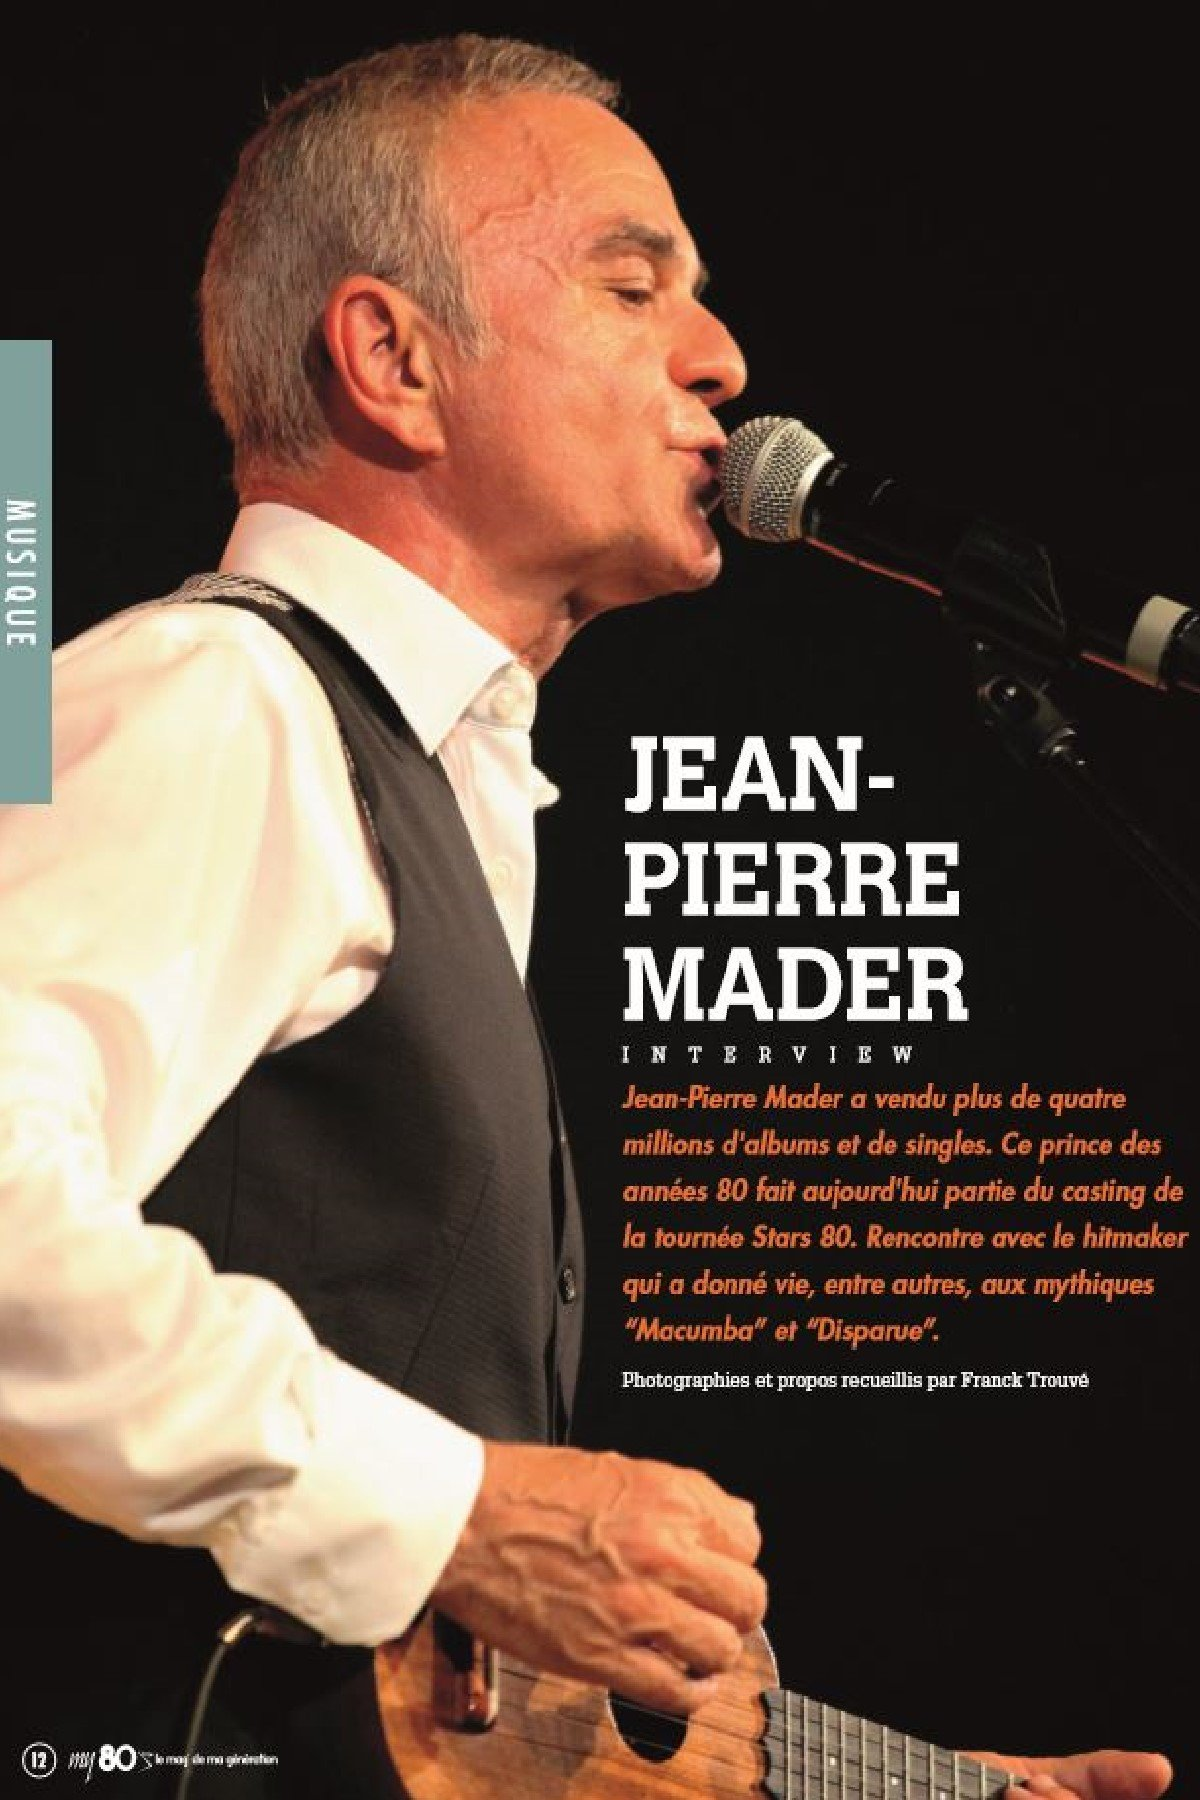 jean pierre mader interview photo franck trouvé